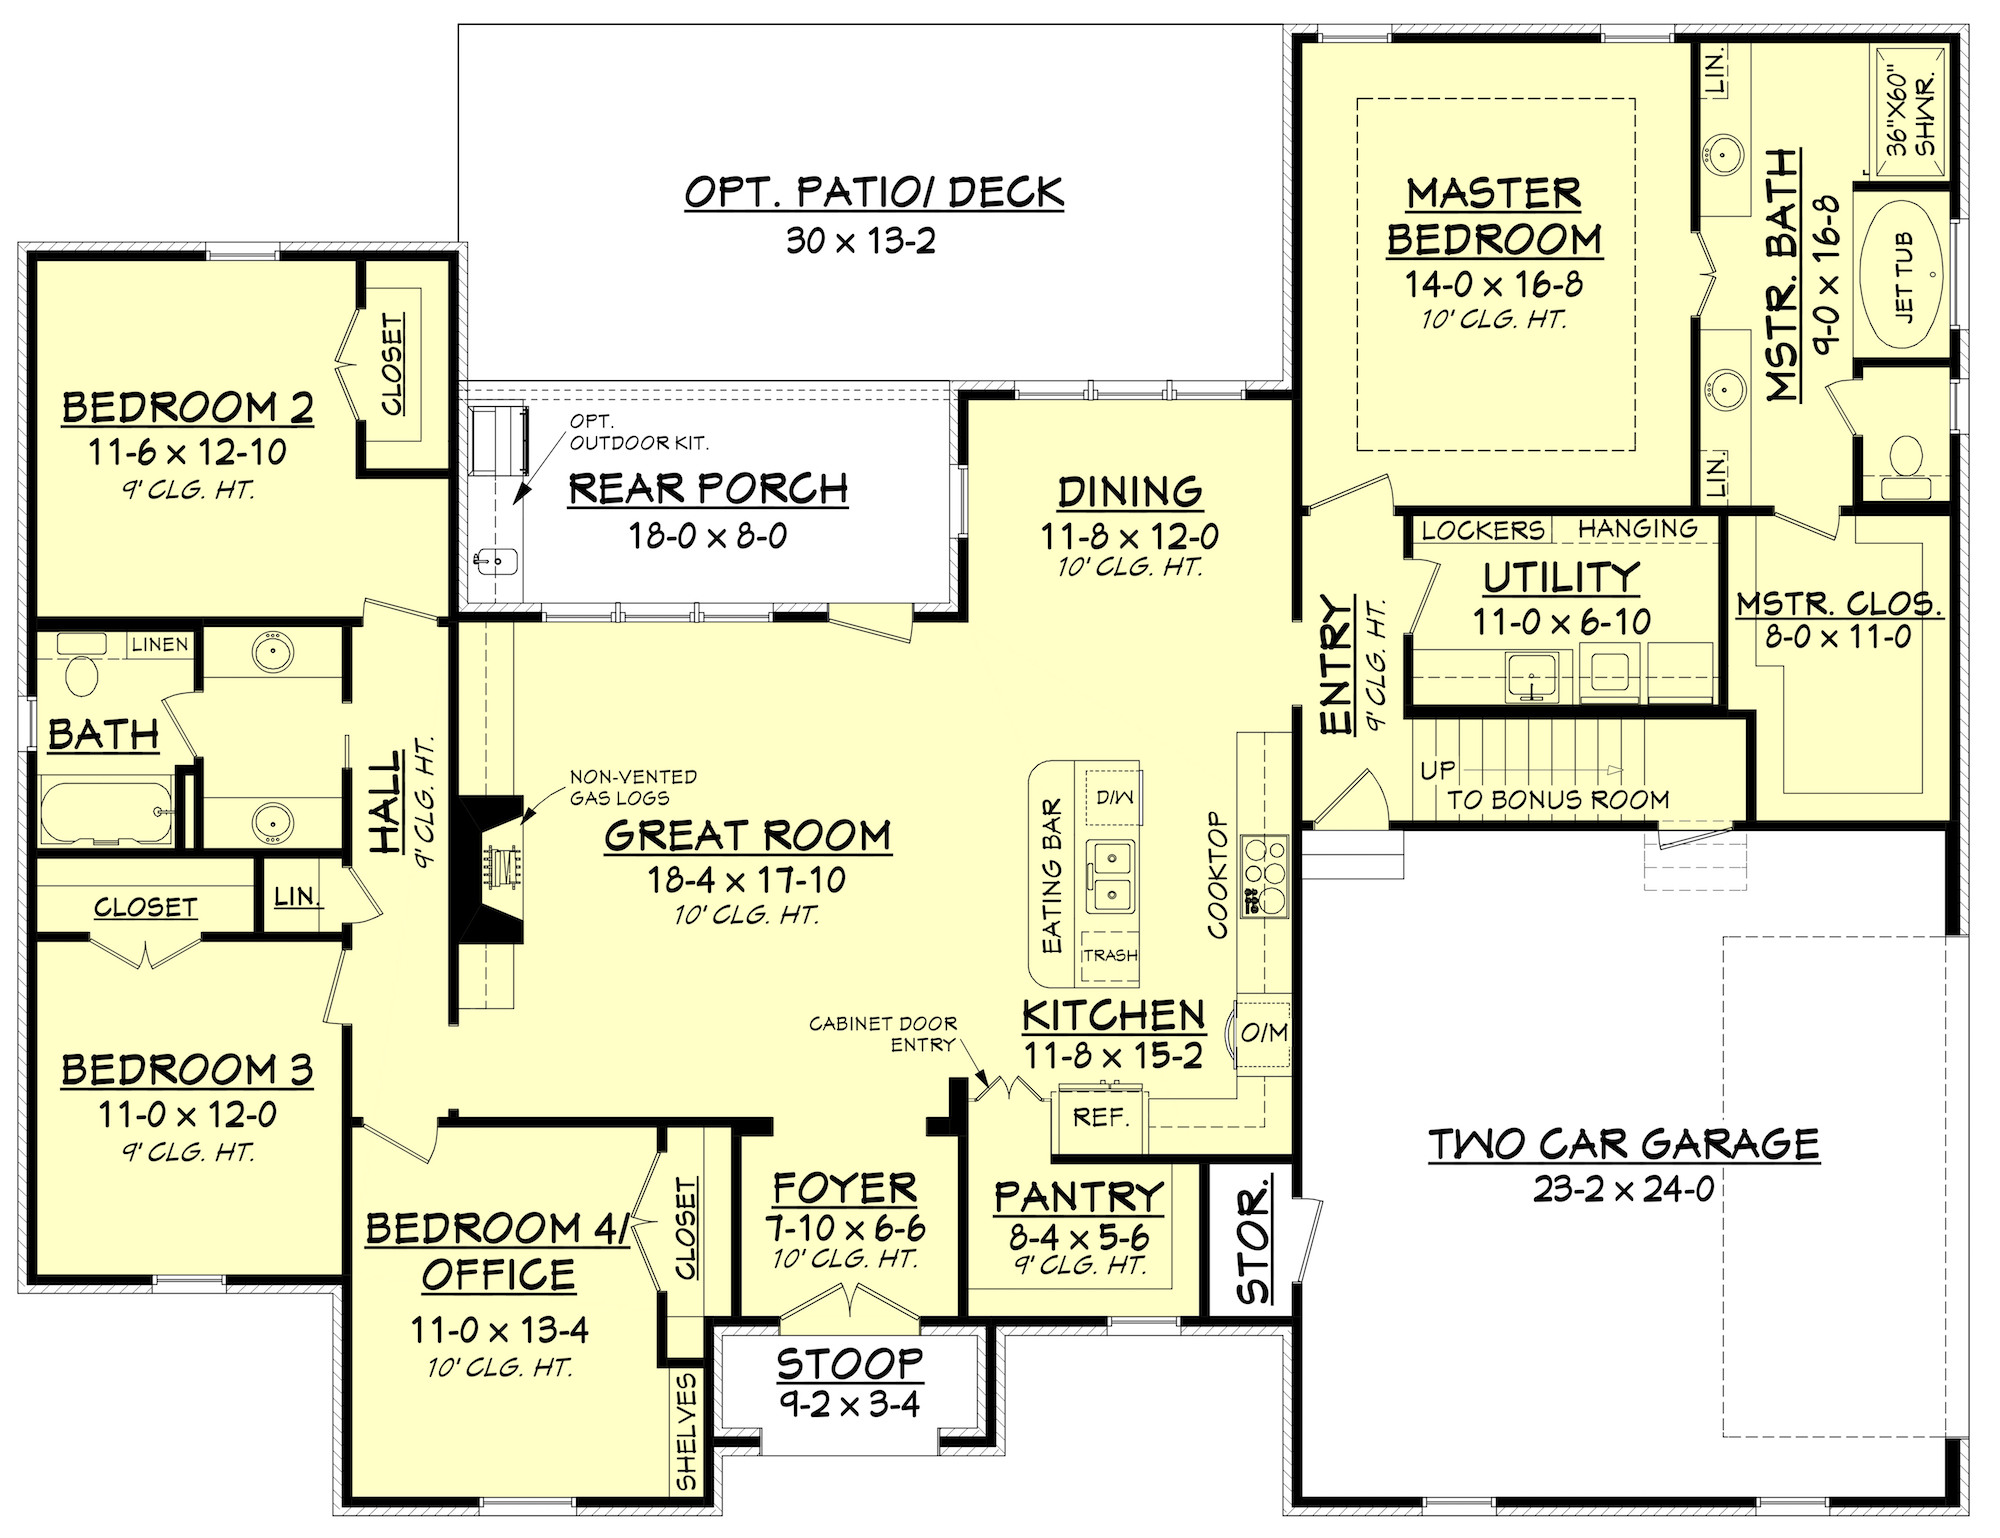 Acadian house plan 142 1154 4 bedrm 2210 sq ft home plan for Floor plans